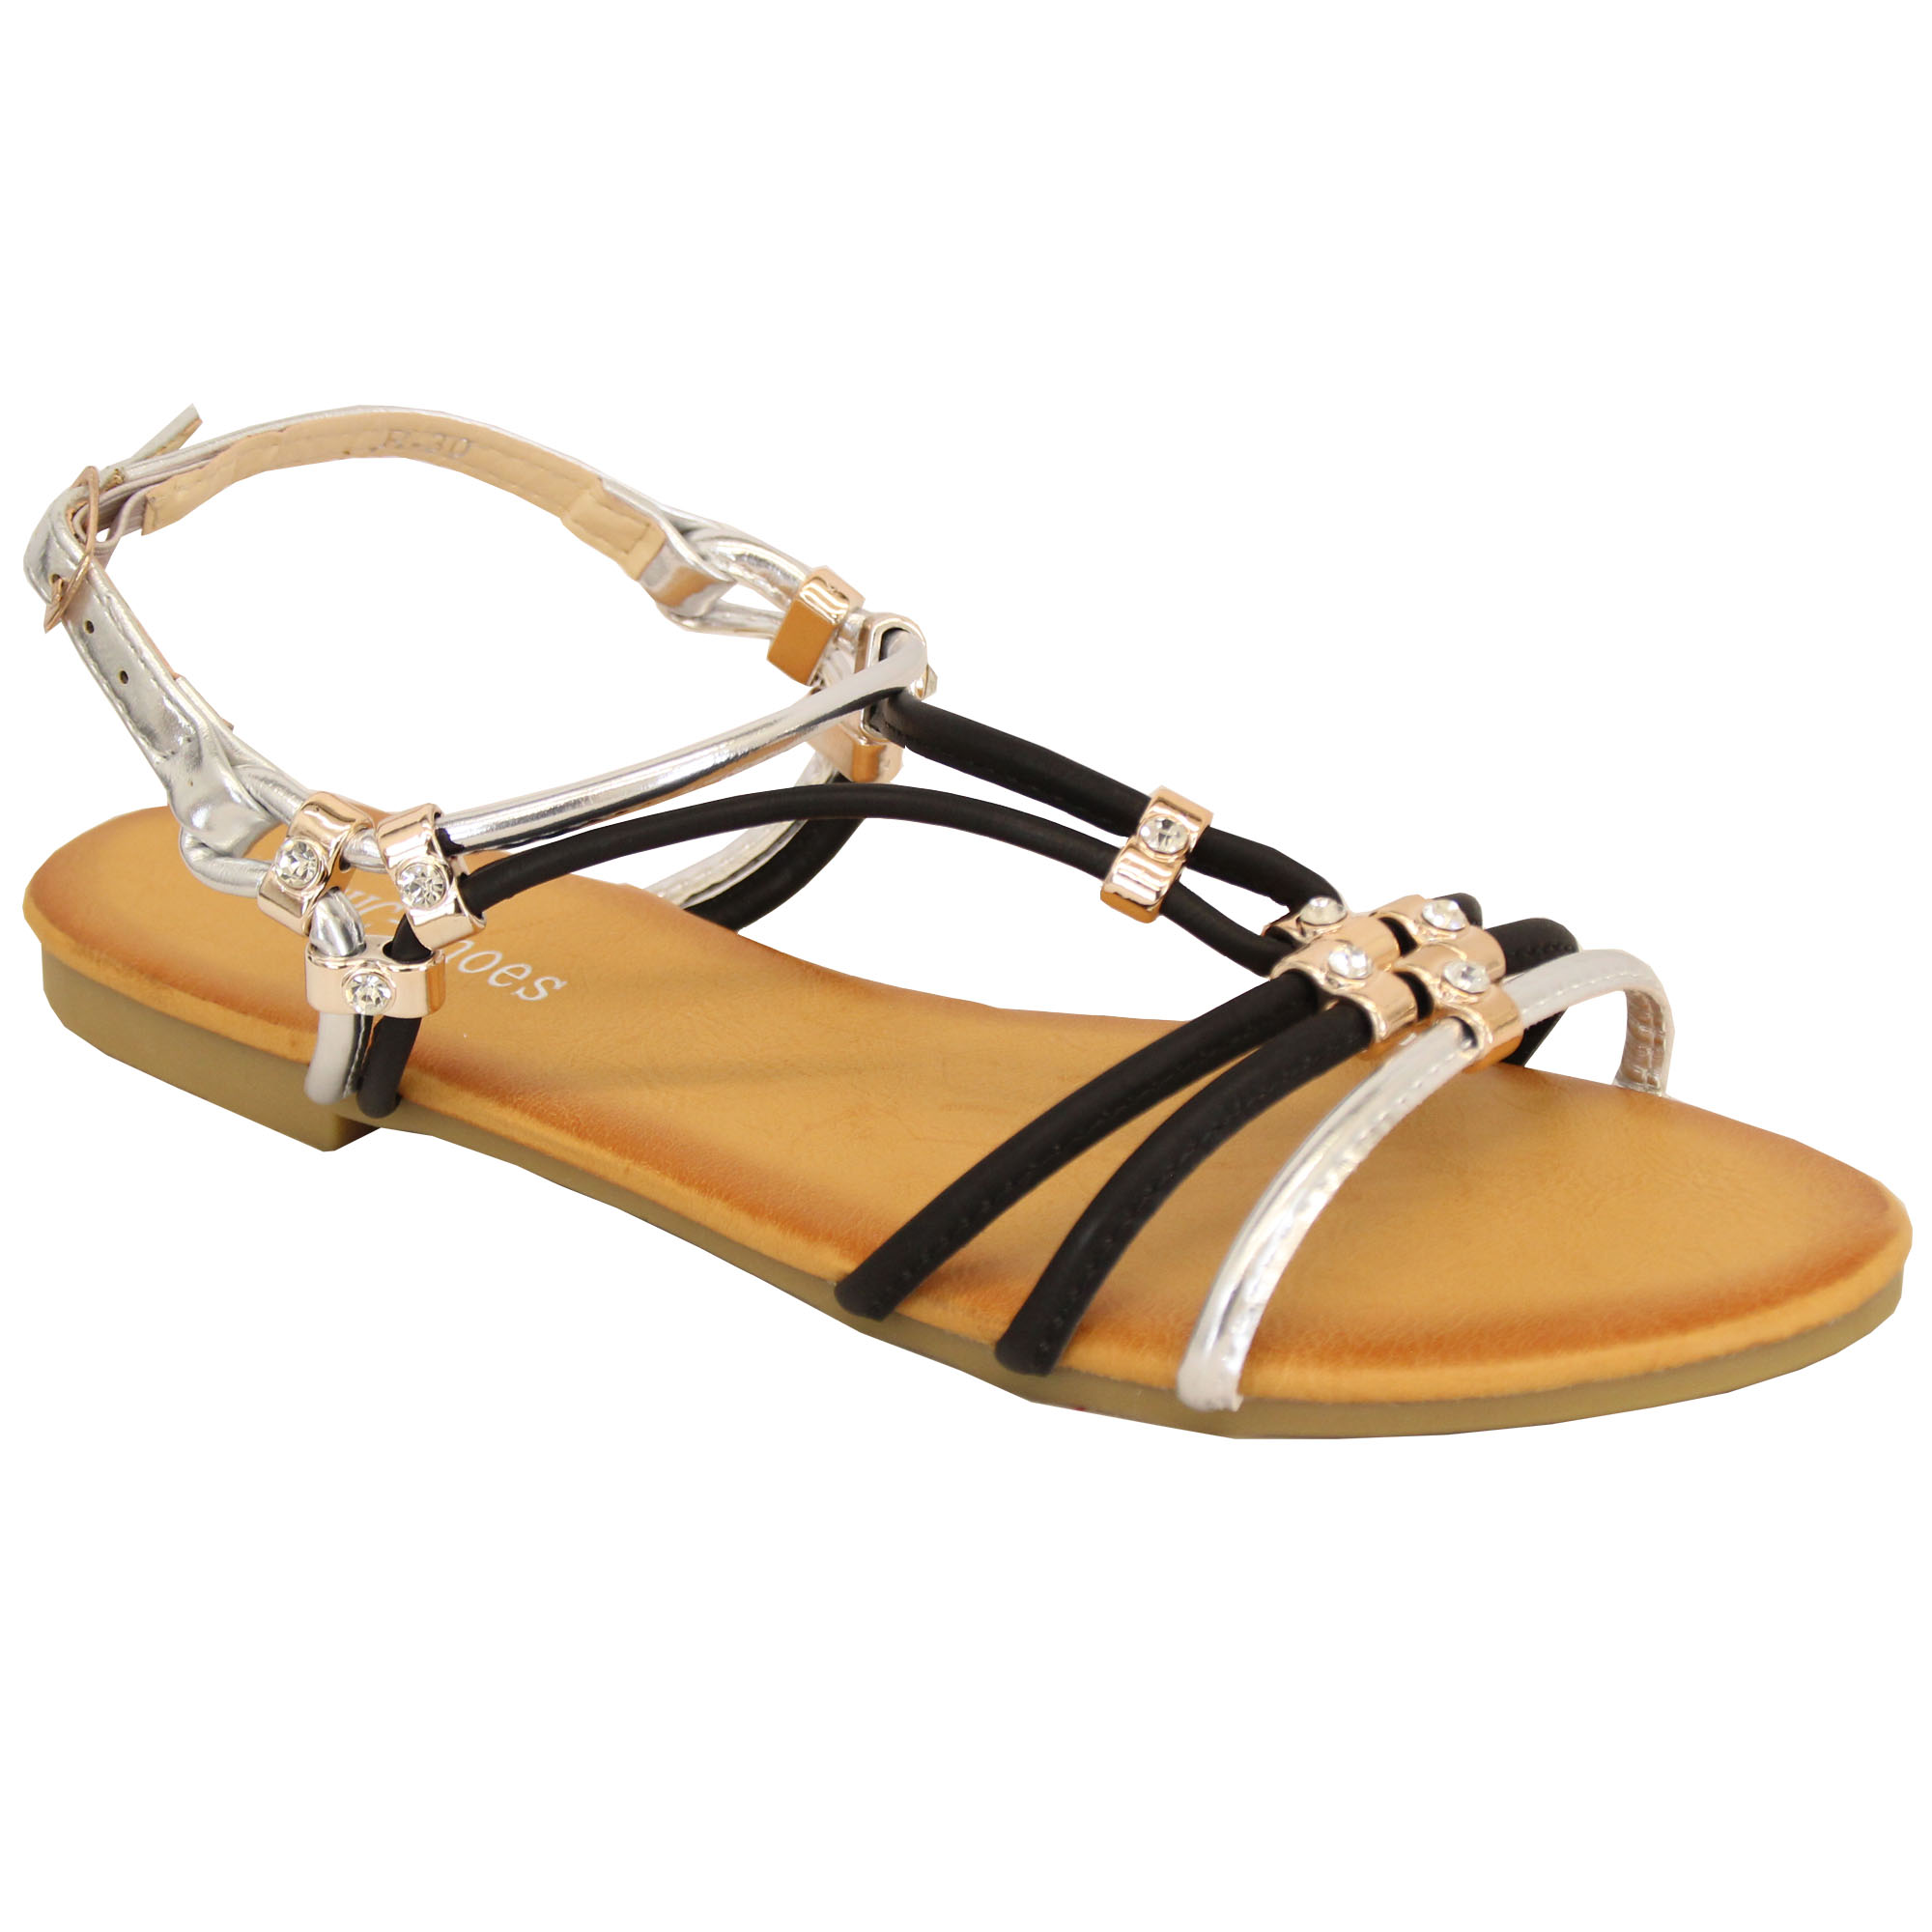 Ladies-Flat-Sandals-Womens-Slip-On-Open-Toe-Buckle-Diamante-Shoes-Fashion-Party thumbnail 5